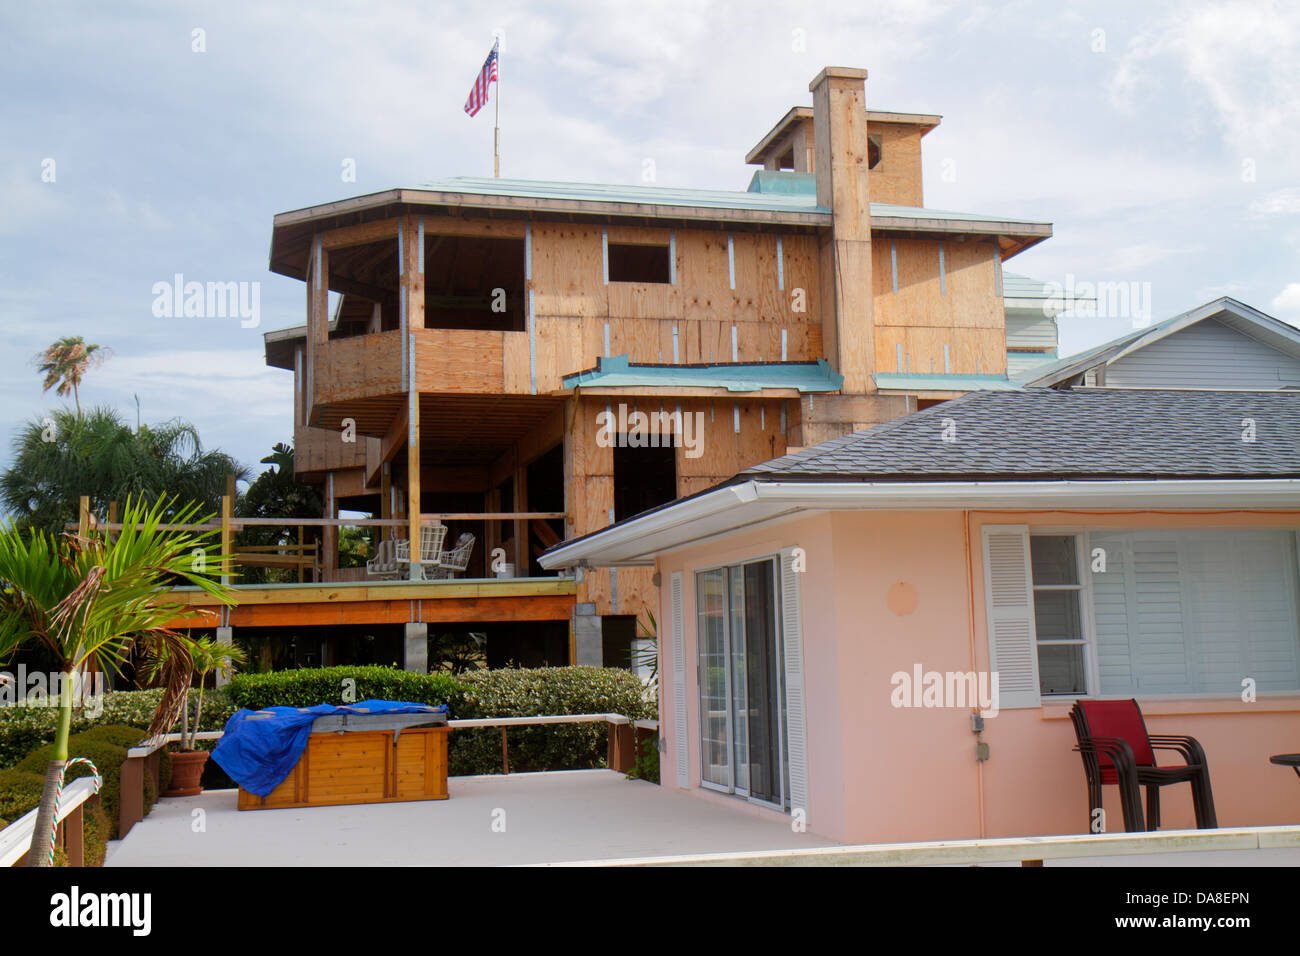 Florida Clearwater Beach new home construction waterfront 2 two story storey 1 one story blocking view neighboring - Stock Image